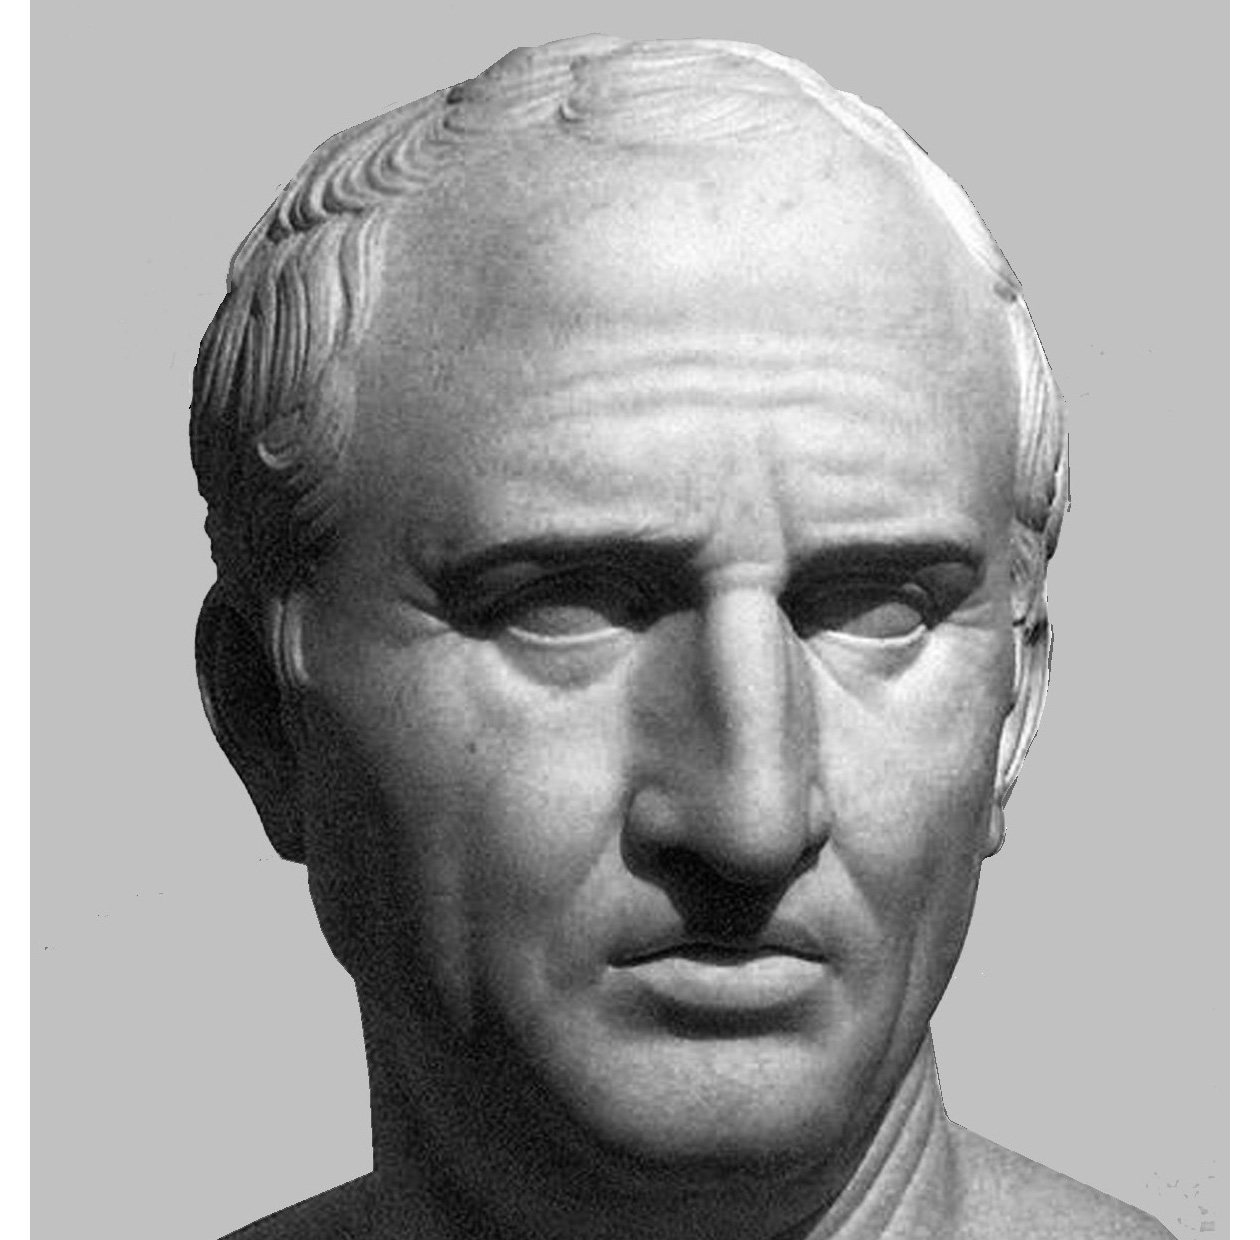 stoicism in julius caesar Start studying the tragedy of julius caesar by william shakespeare: act 4 learn vocabulary, terms, and more with flashcards, games, and other study tools.